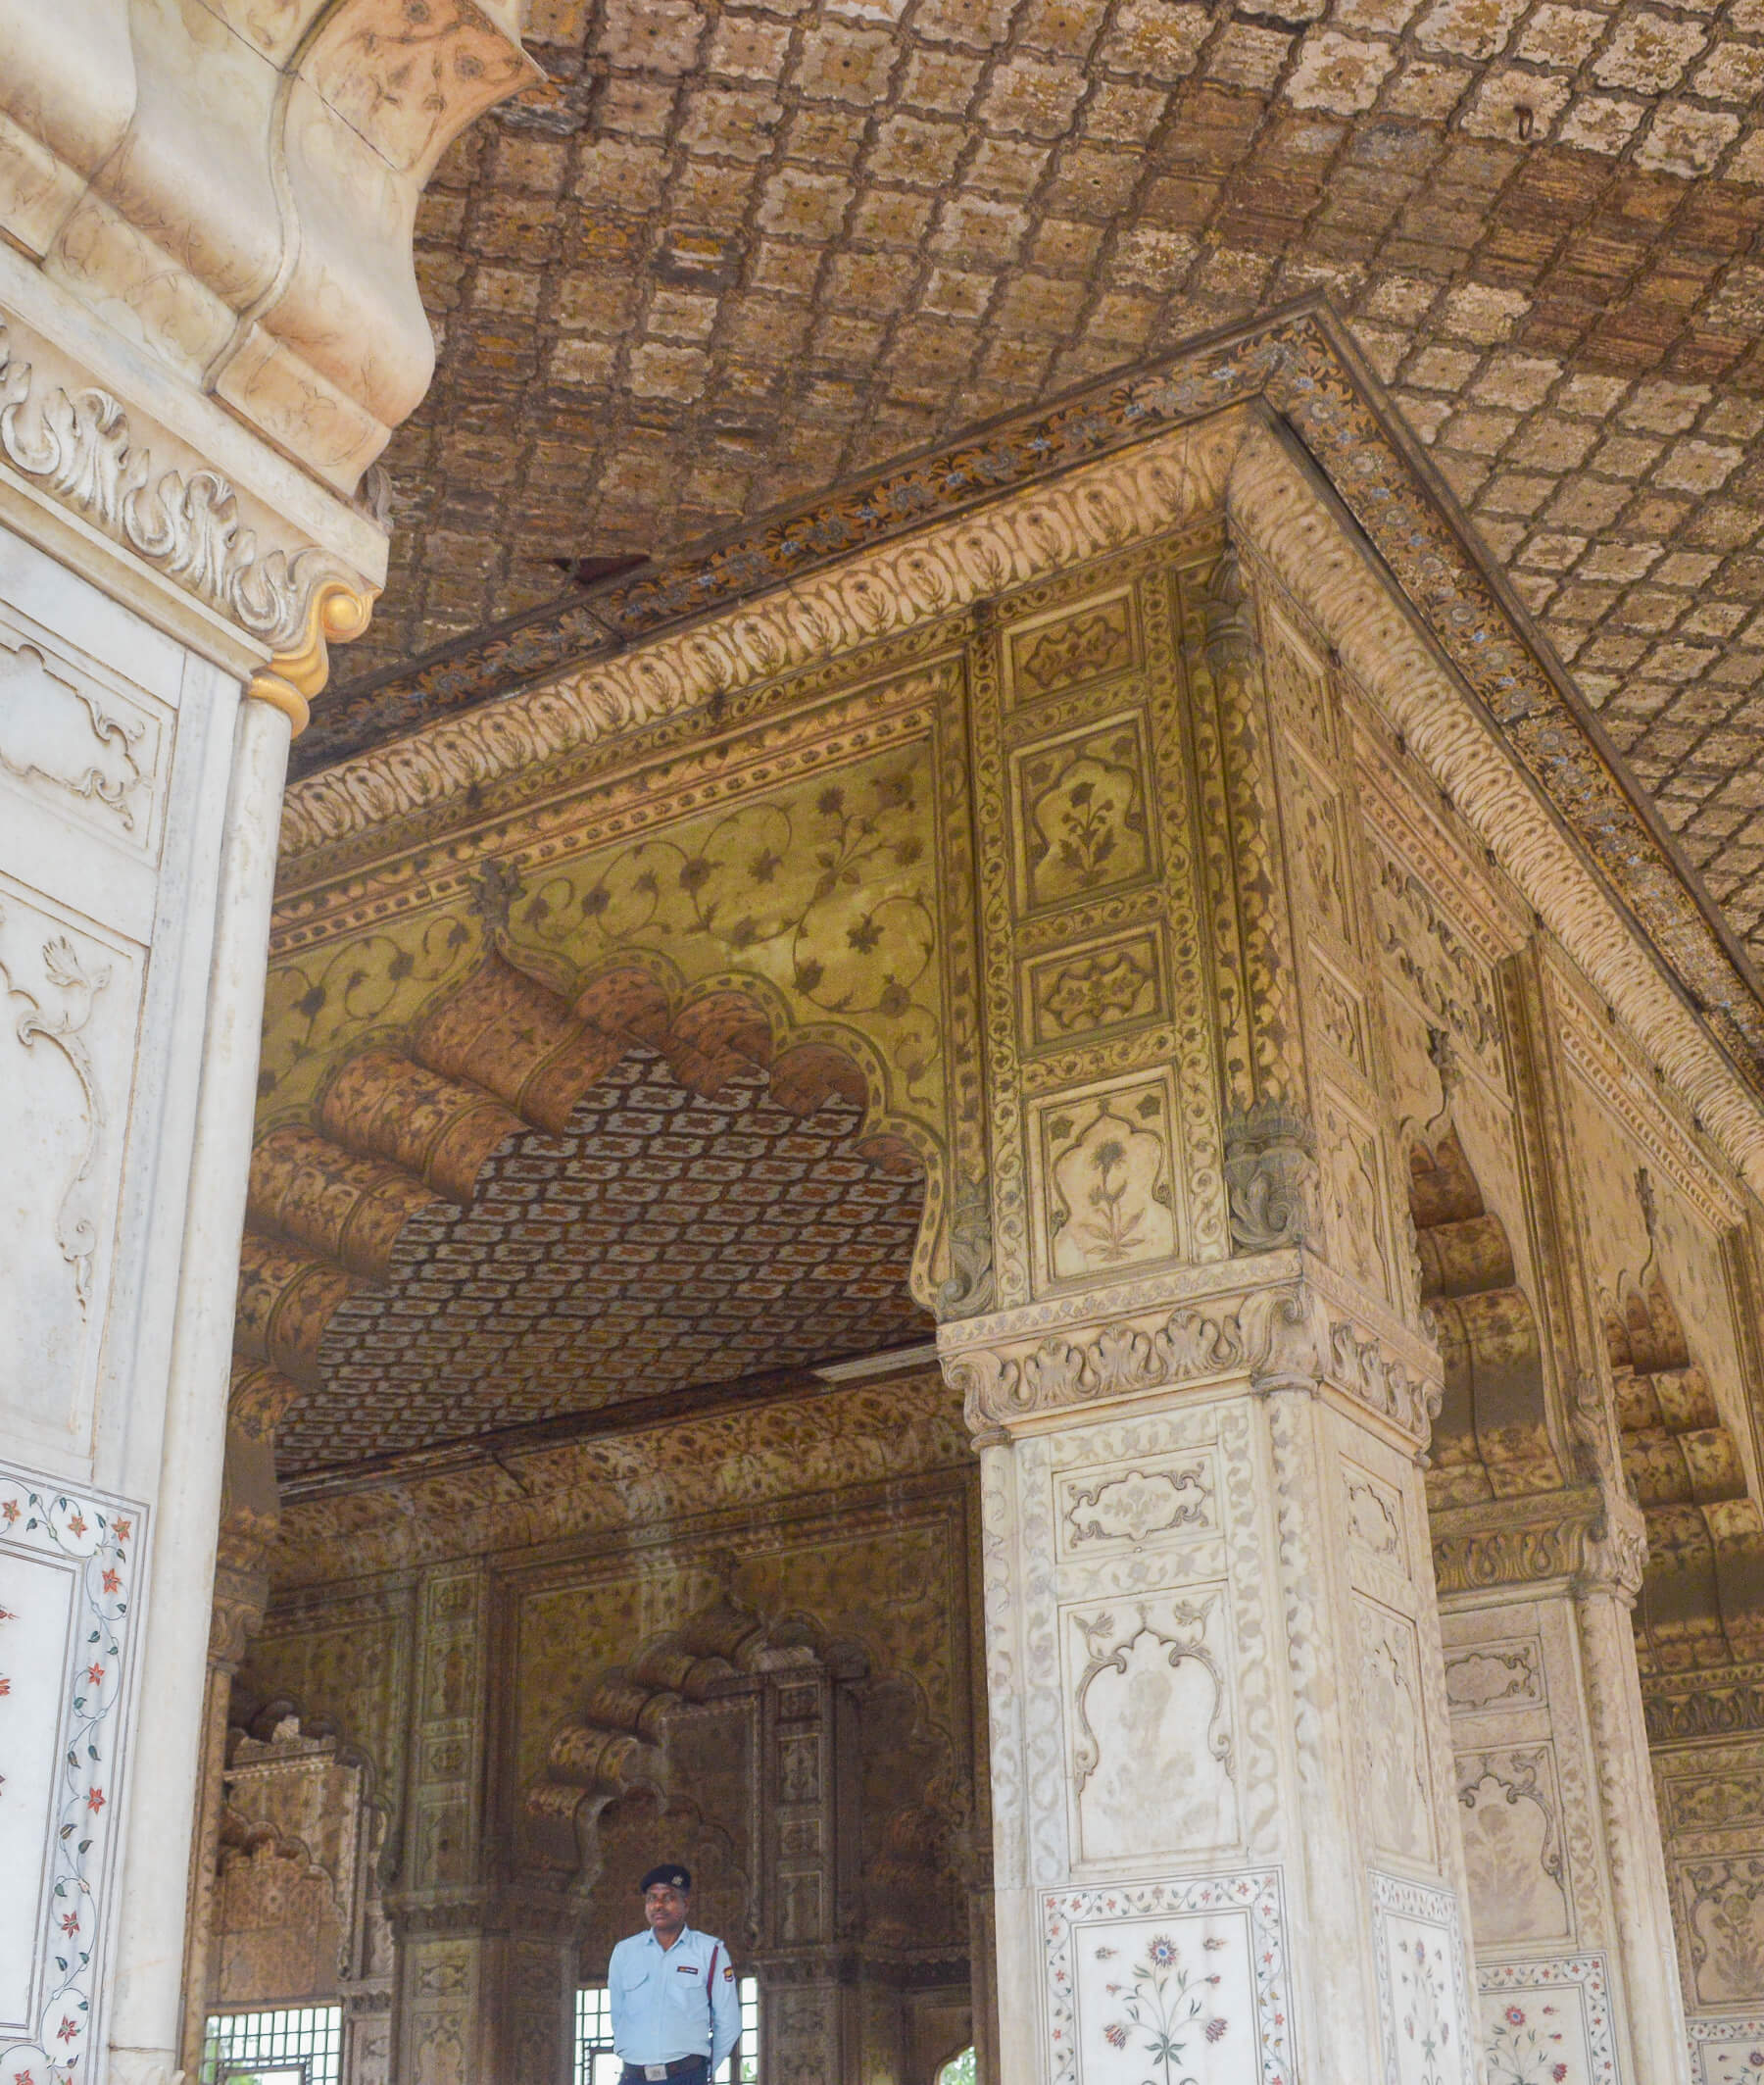 Tiled walls, pillars and ceilings in a Indian palace